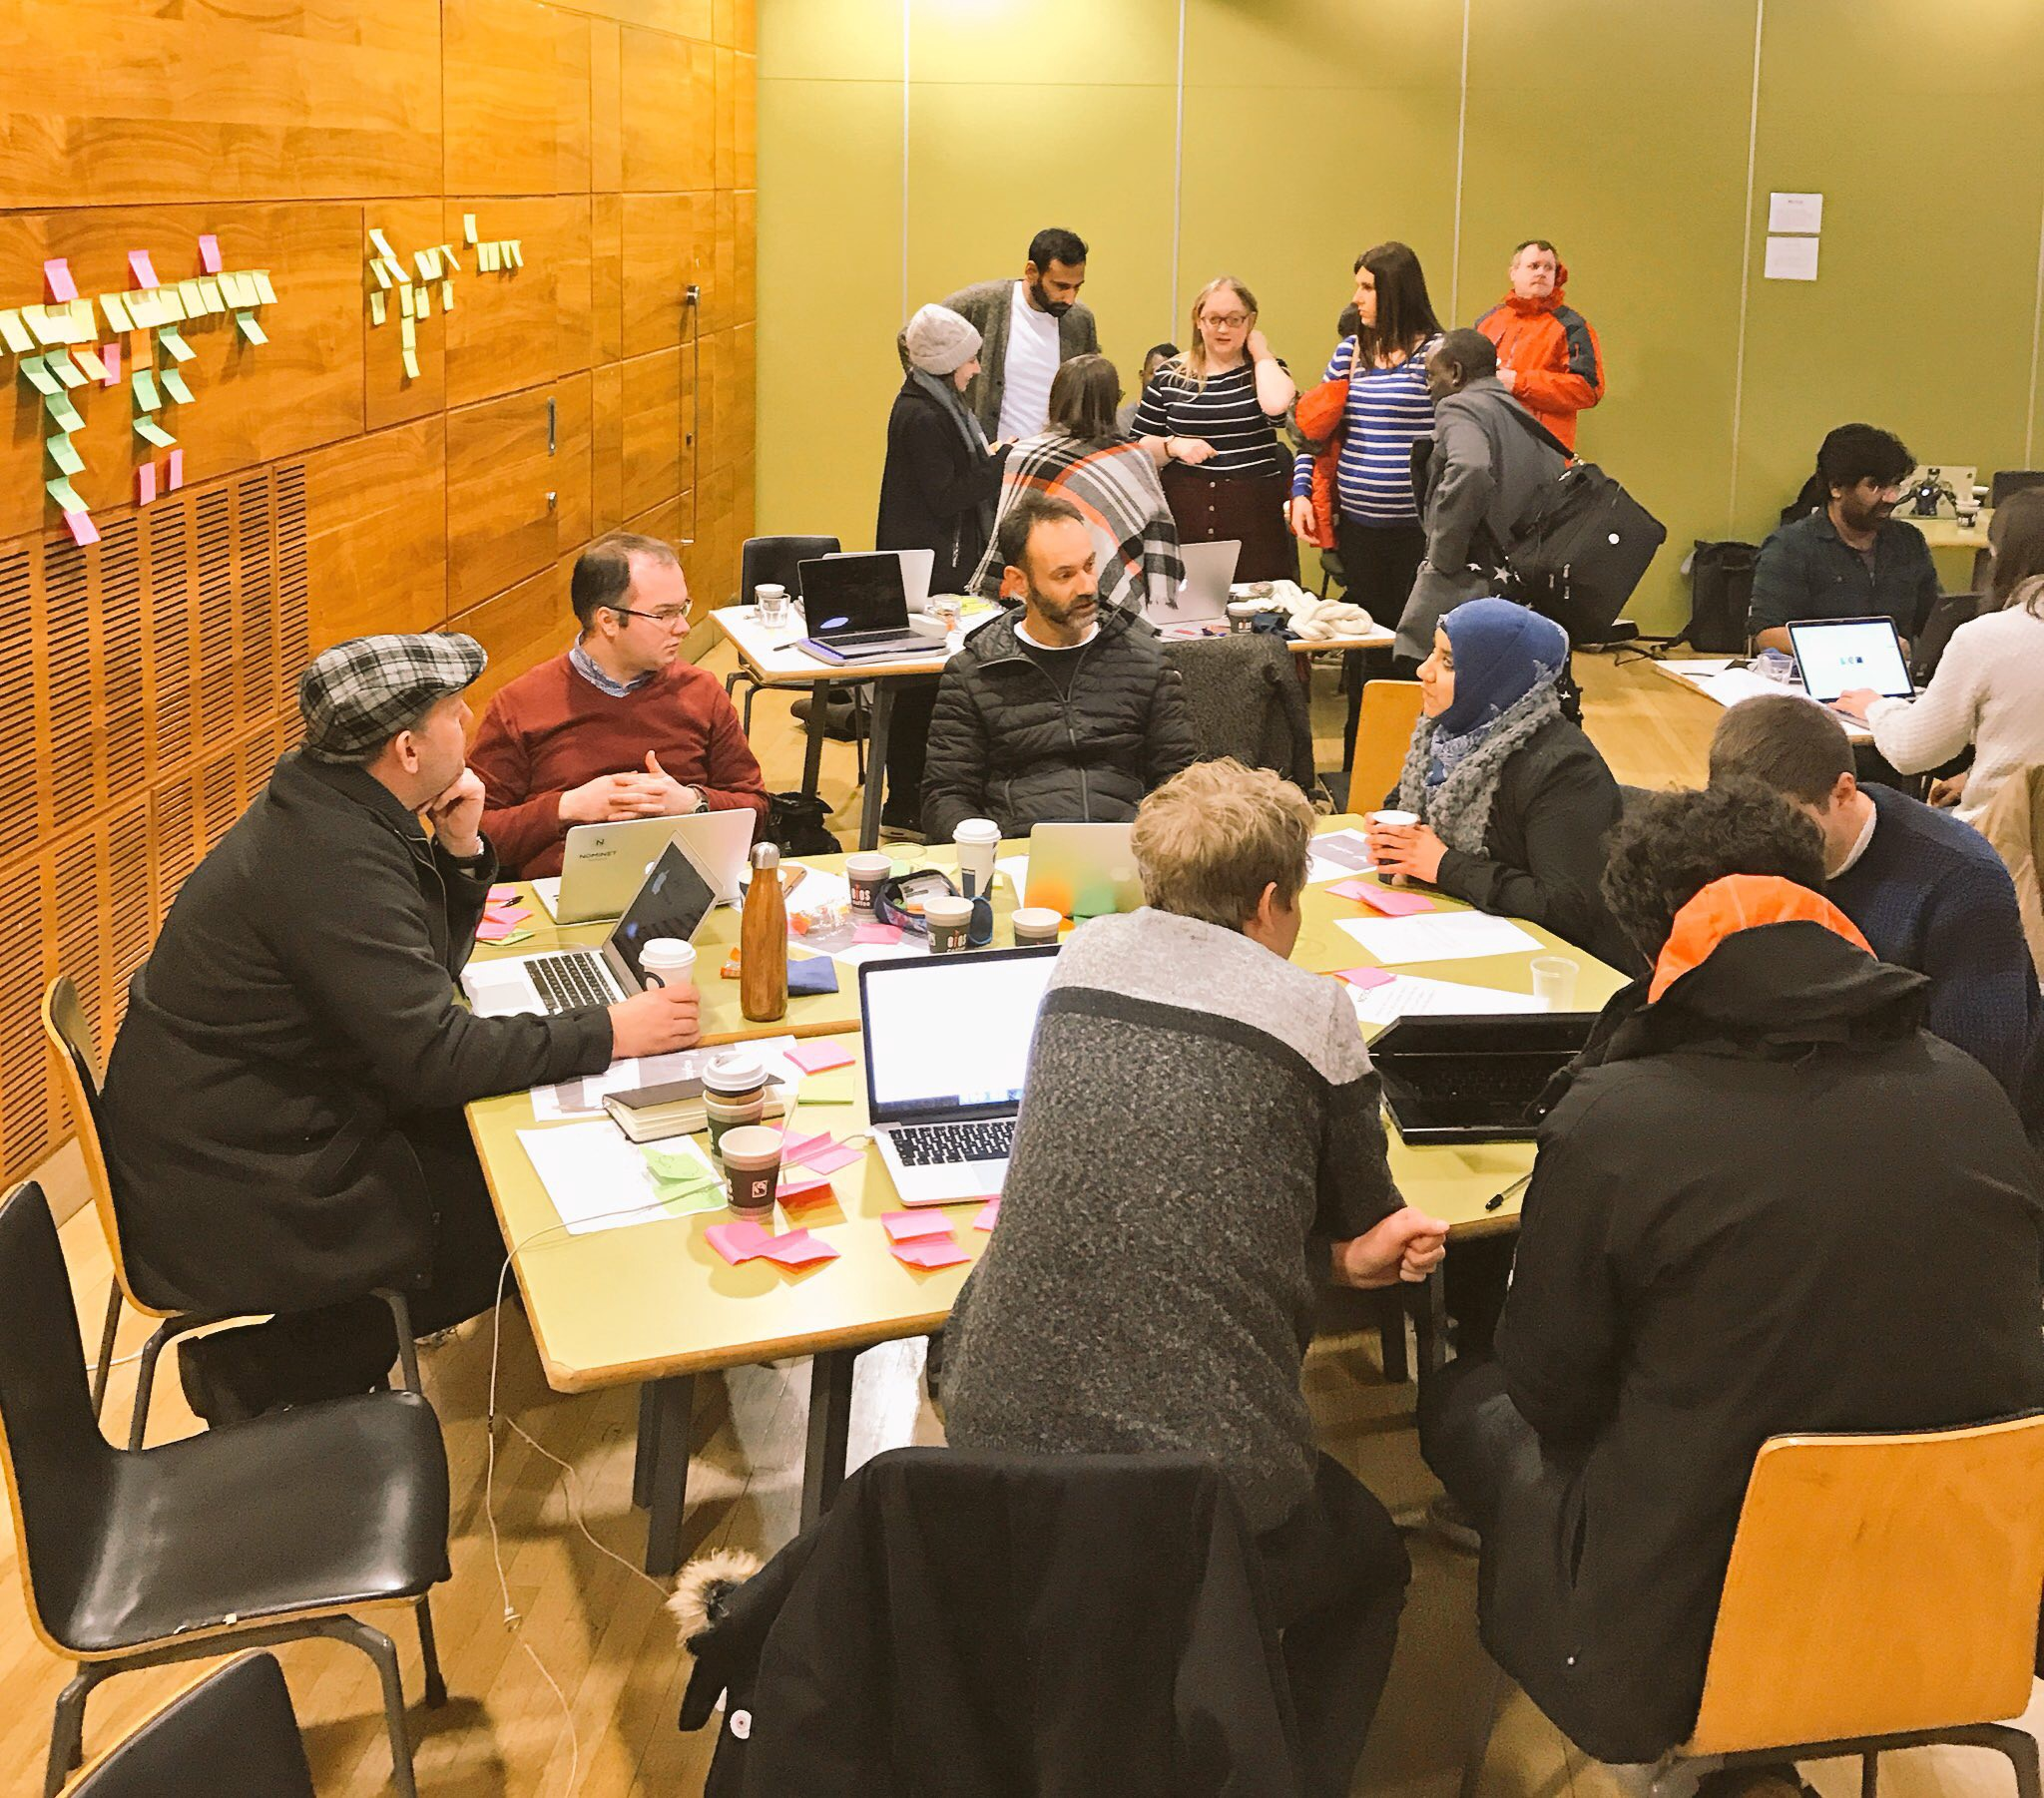 Room full of people — about 3 table groups of people chatting